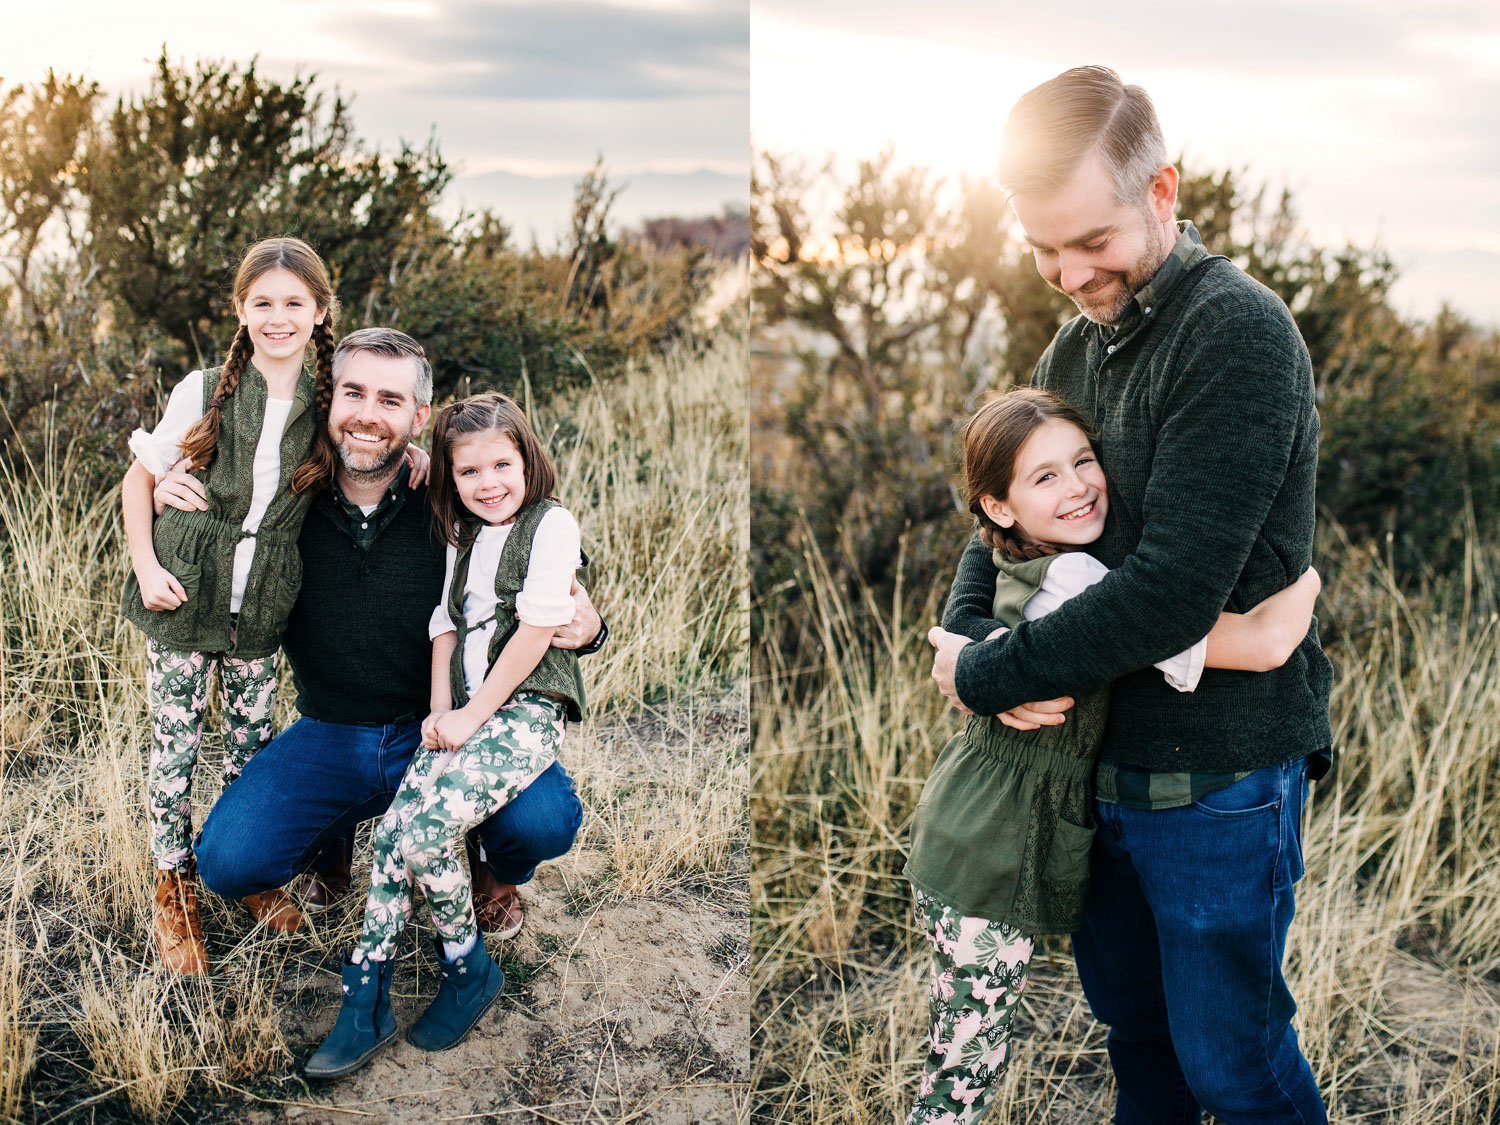 A father poses with his daughters during a lifestyle family photo shoot in Roseville, , California with Amy Wright as their photographer.